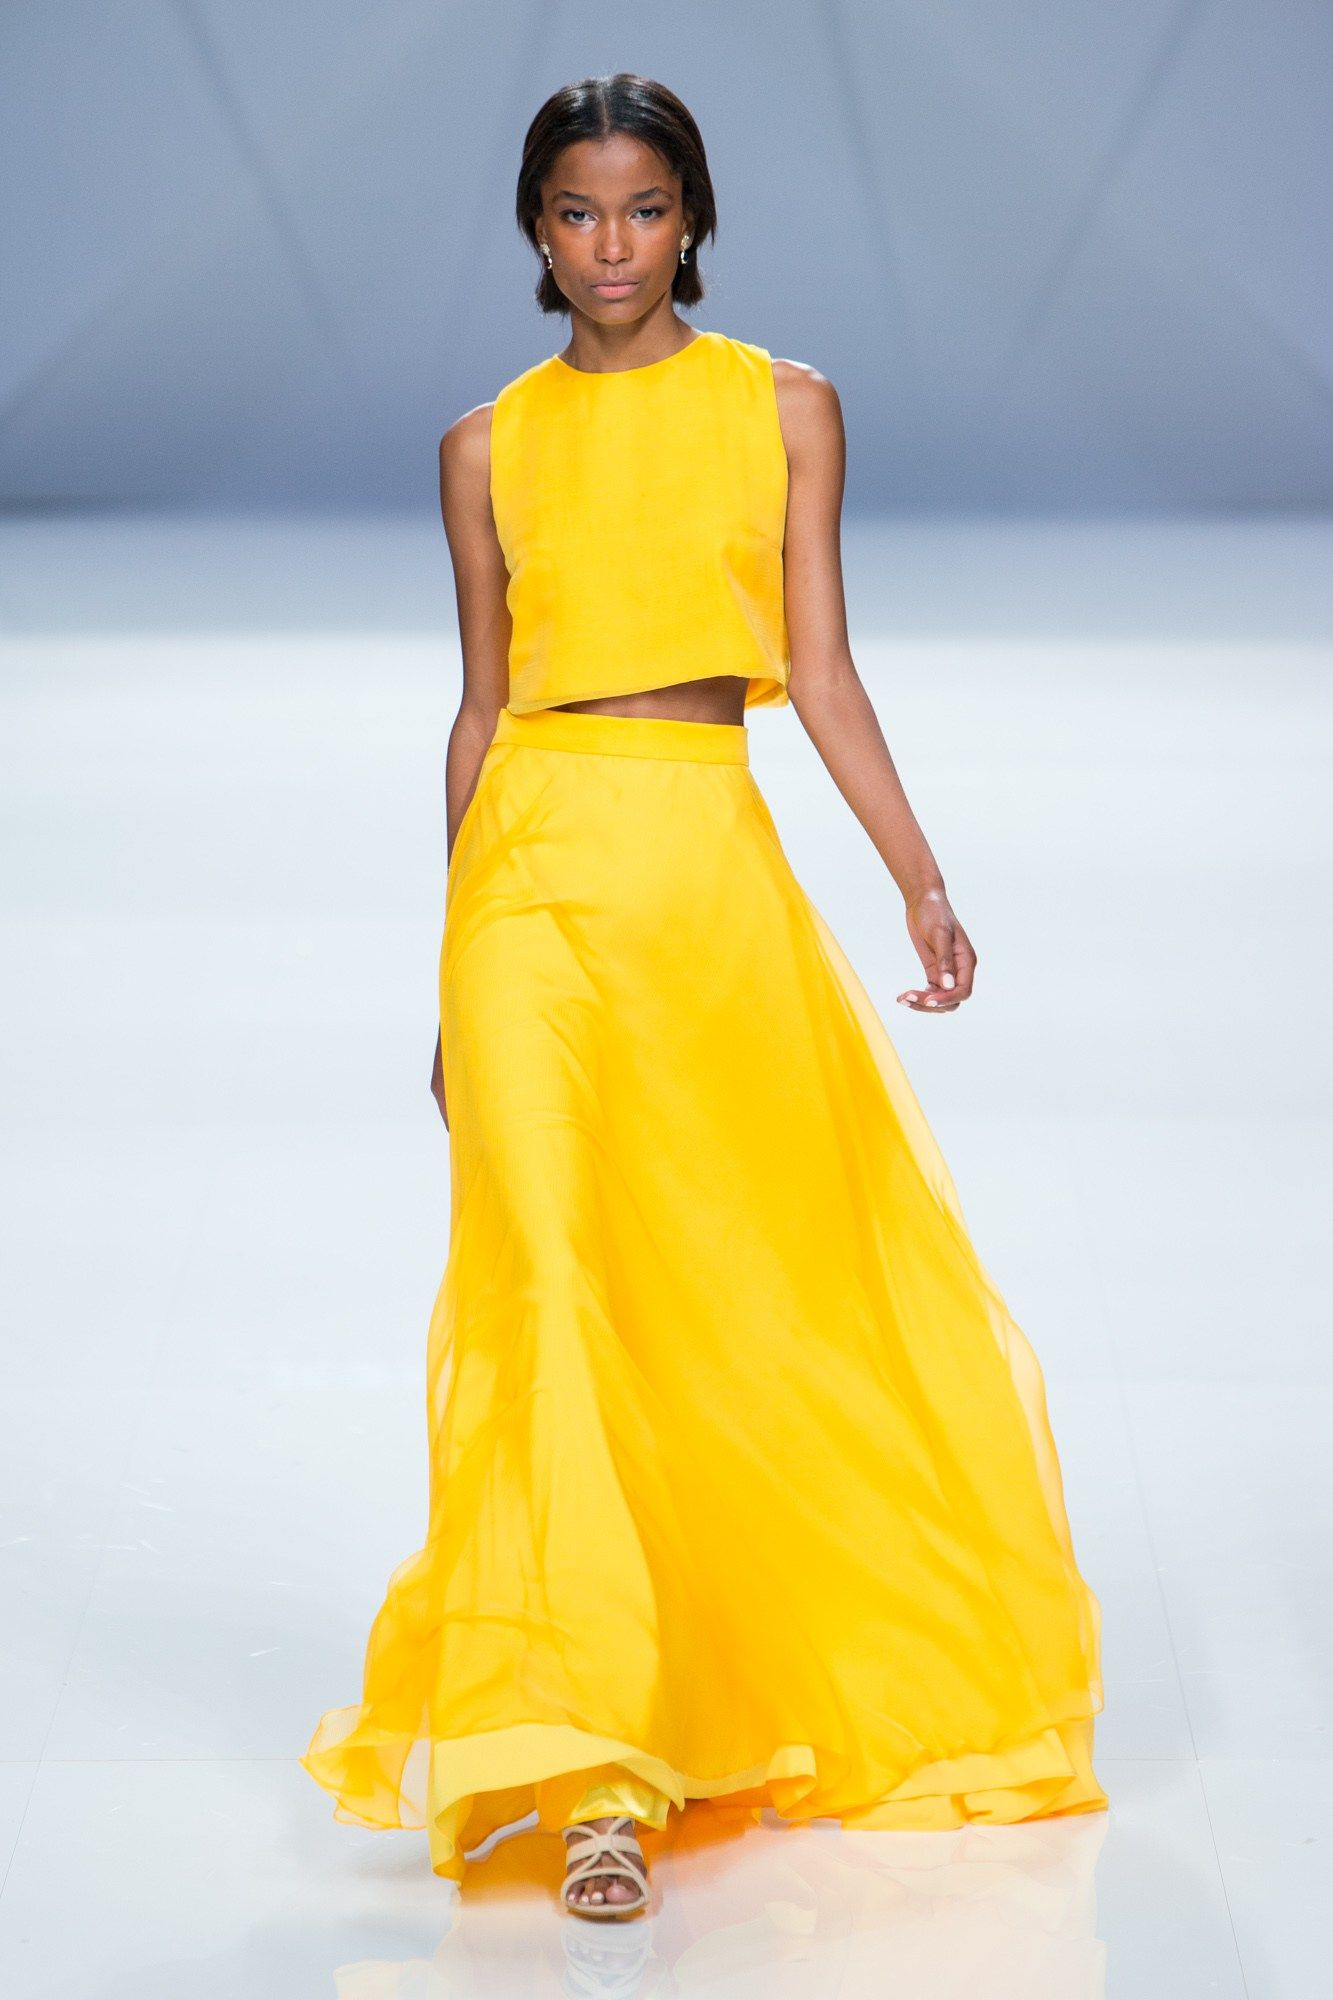 9a2174cc395 yellow-outfits3-675x1013 6 Main Fashion Trends of Spring   Summer 2017